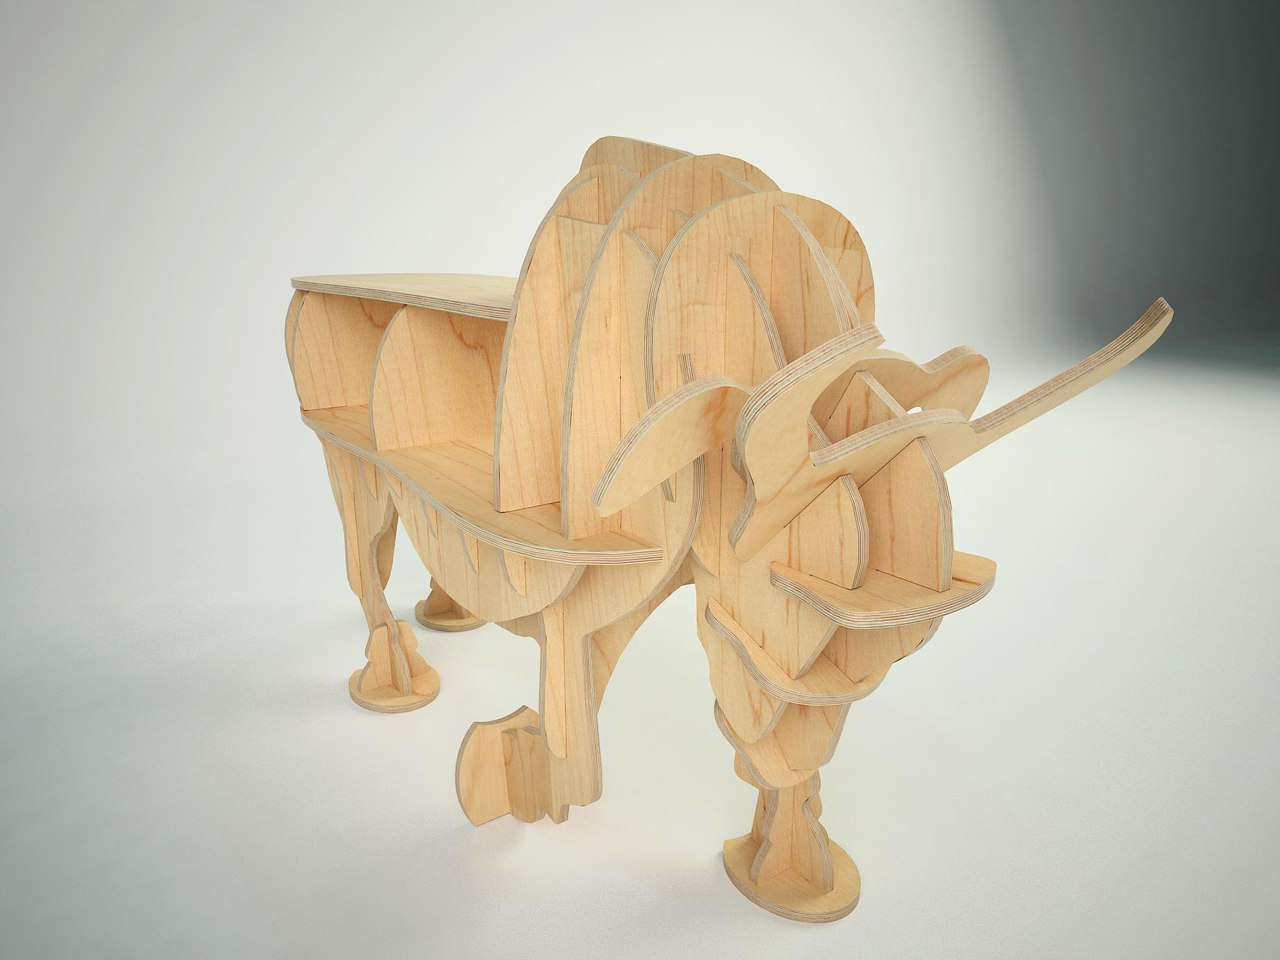 Laser Cut Bull 3D Wooden Puzzle Free Vector